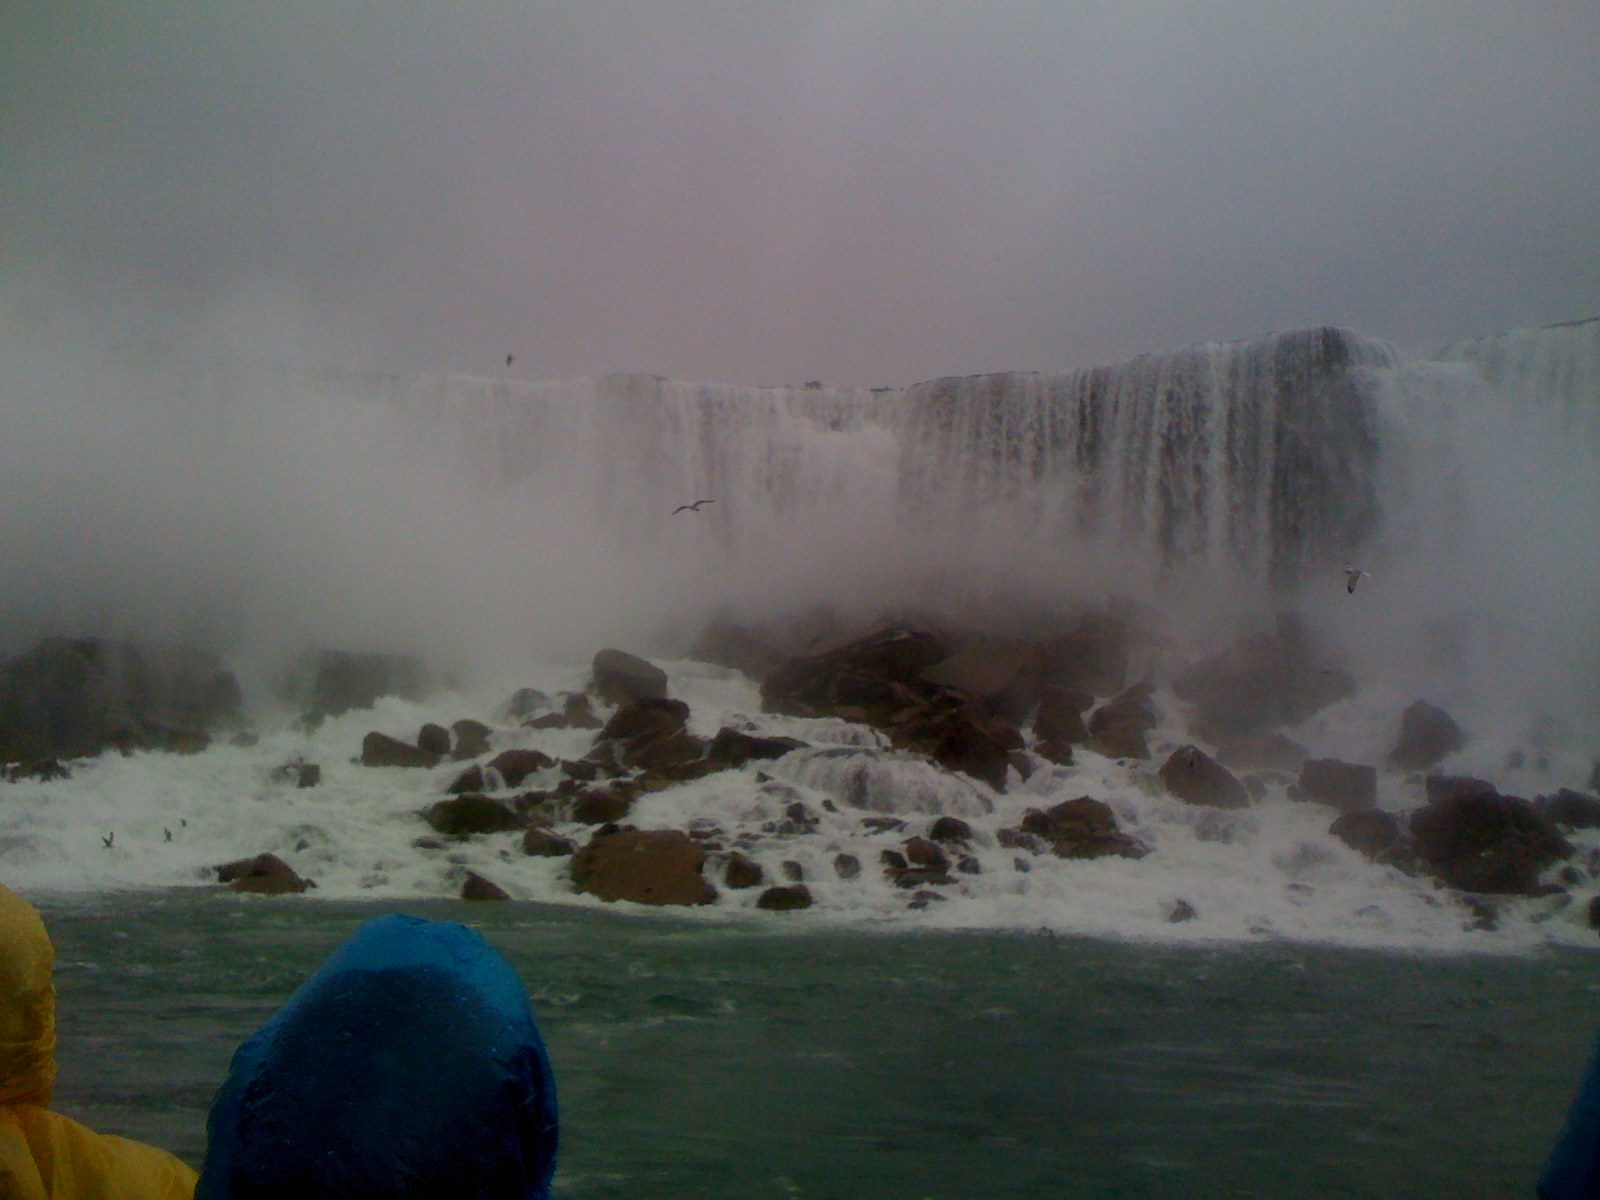 Bridal Veil Falls at Niagara Falls